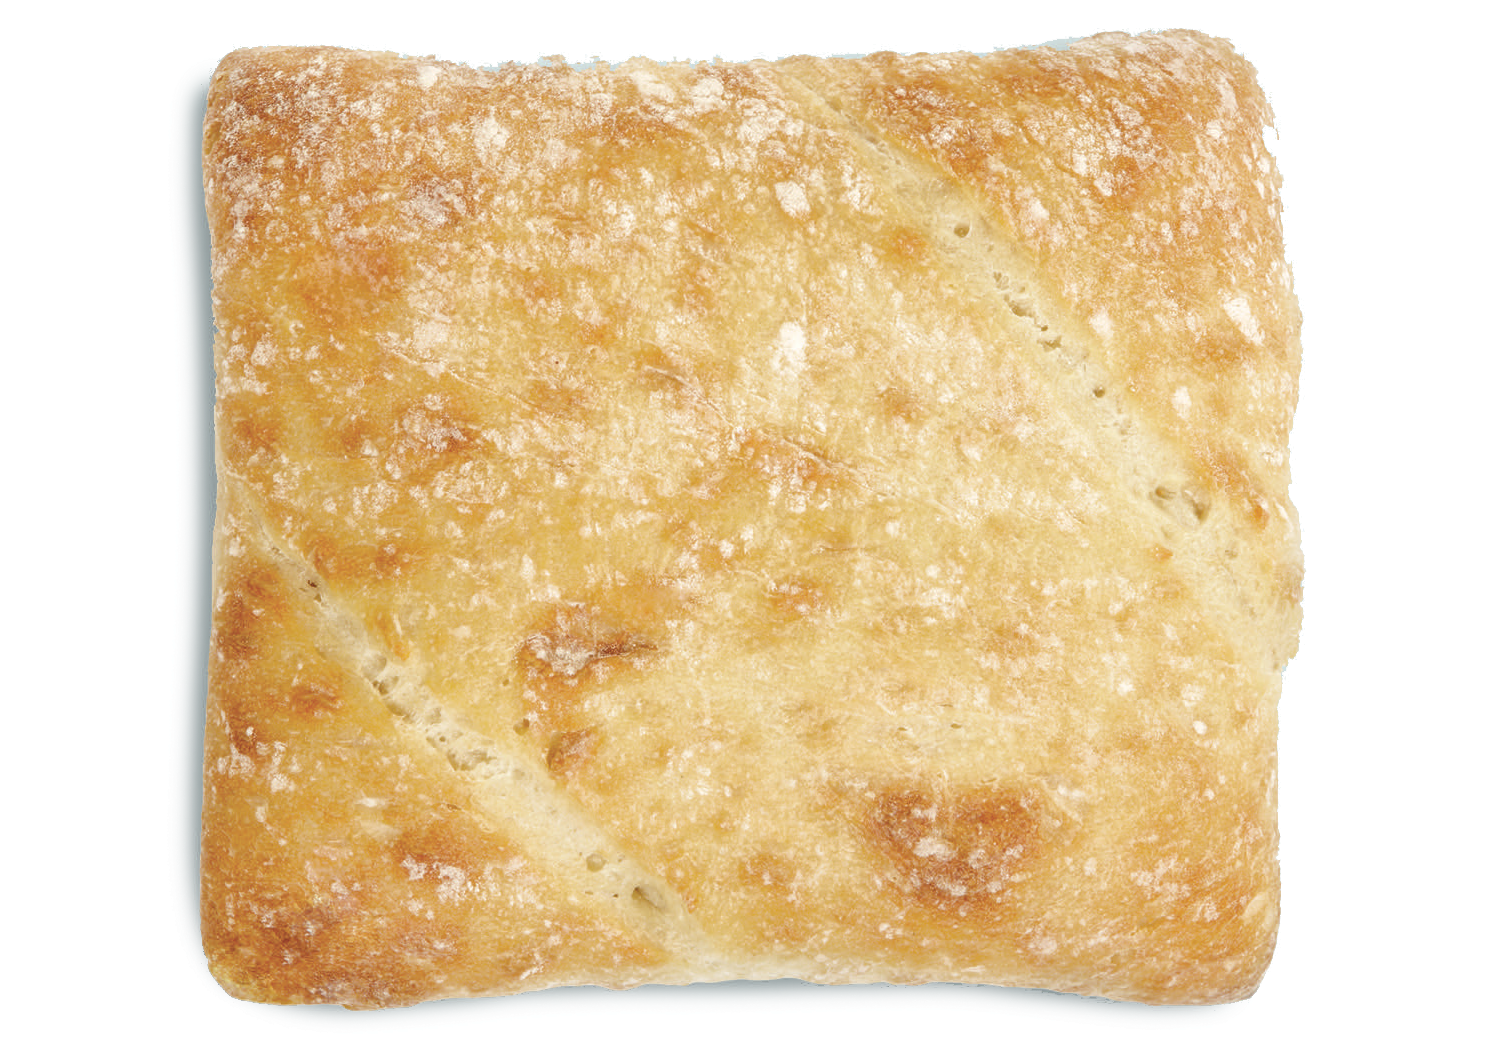 http://patisseriedefrance.net/wp-content/uploads/2018/07/Edited_final_Original-Ciabatta-Loaf.png